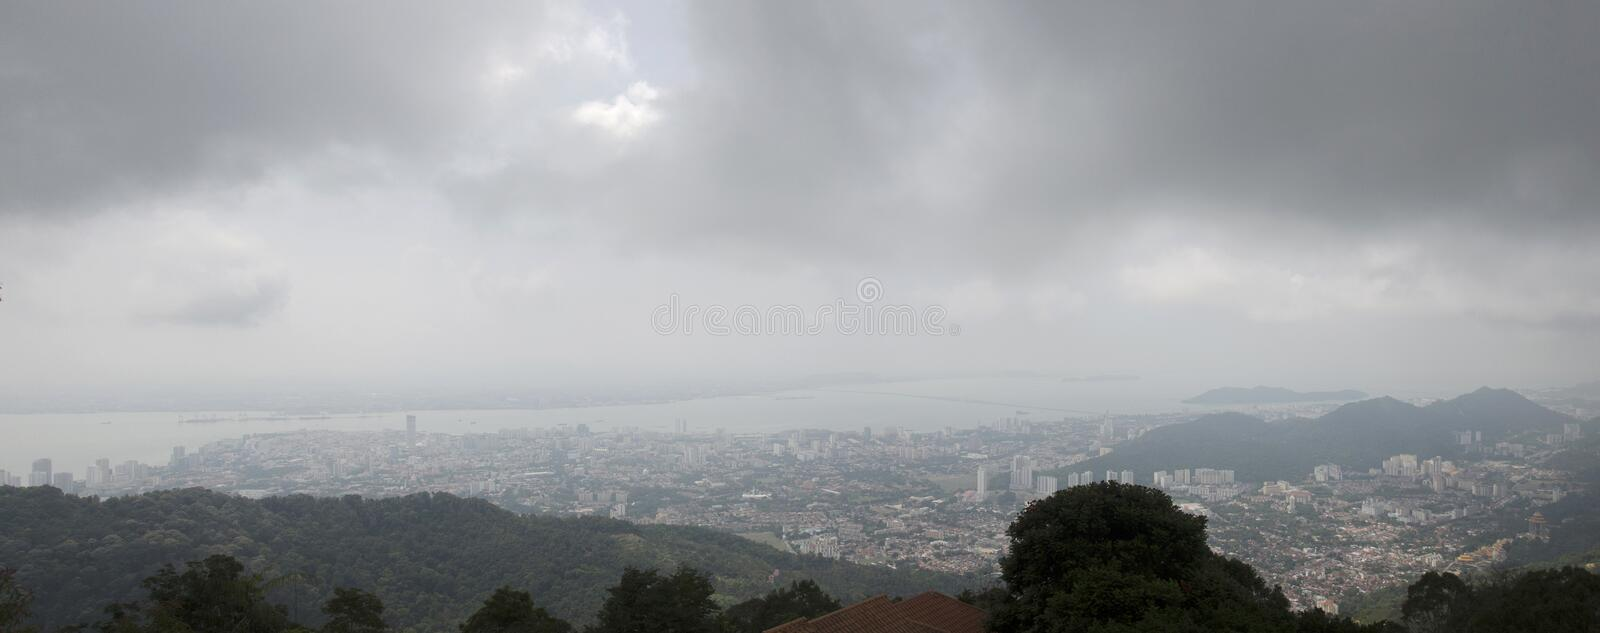 Panorama view landscape of Penang city from viewpoint of Penang royalty free stock image